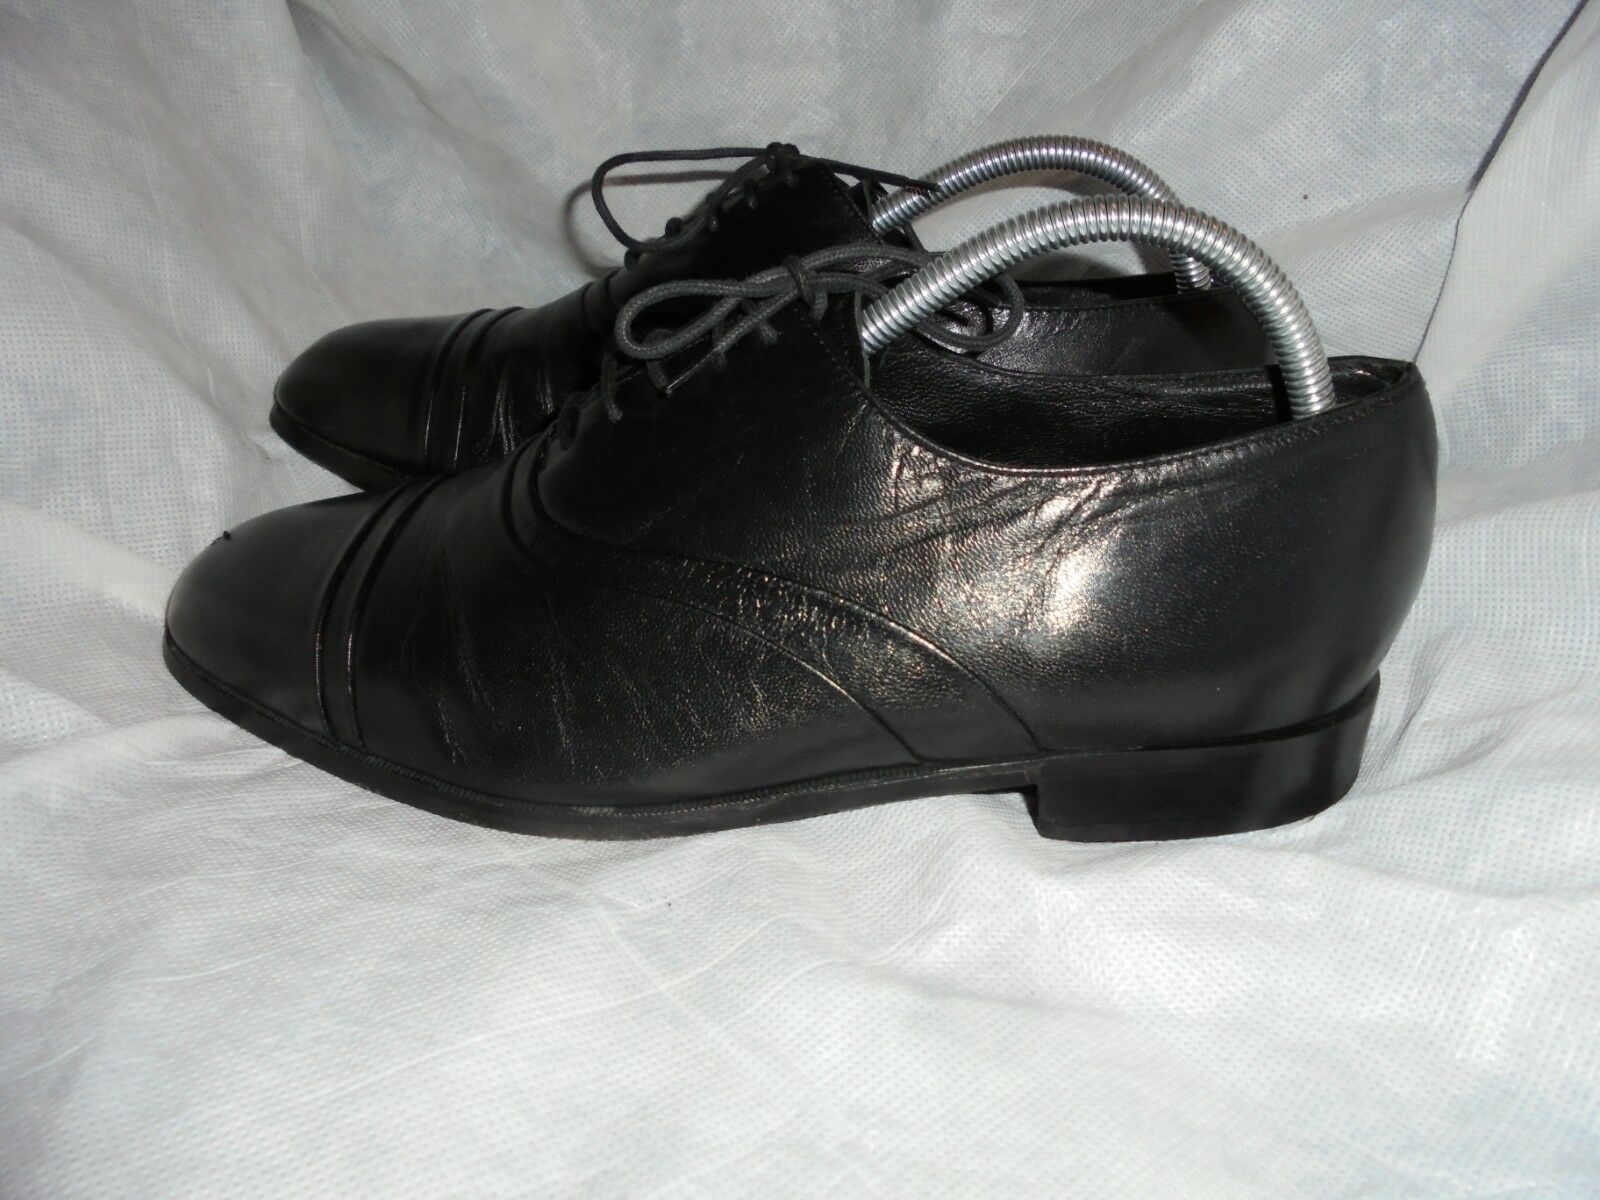 MARKS & SPENCER MENS BLACK LEATHER LACE UP SHOE SIZE UK 9 EU 43 VGC